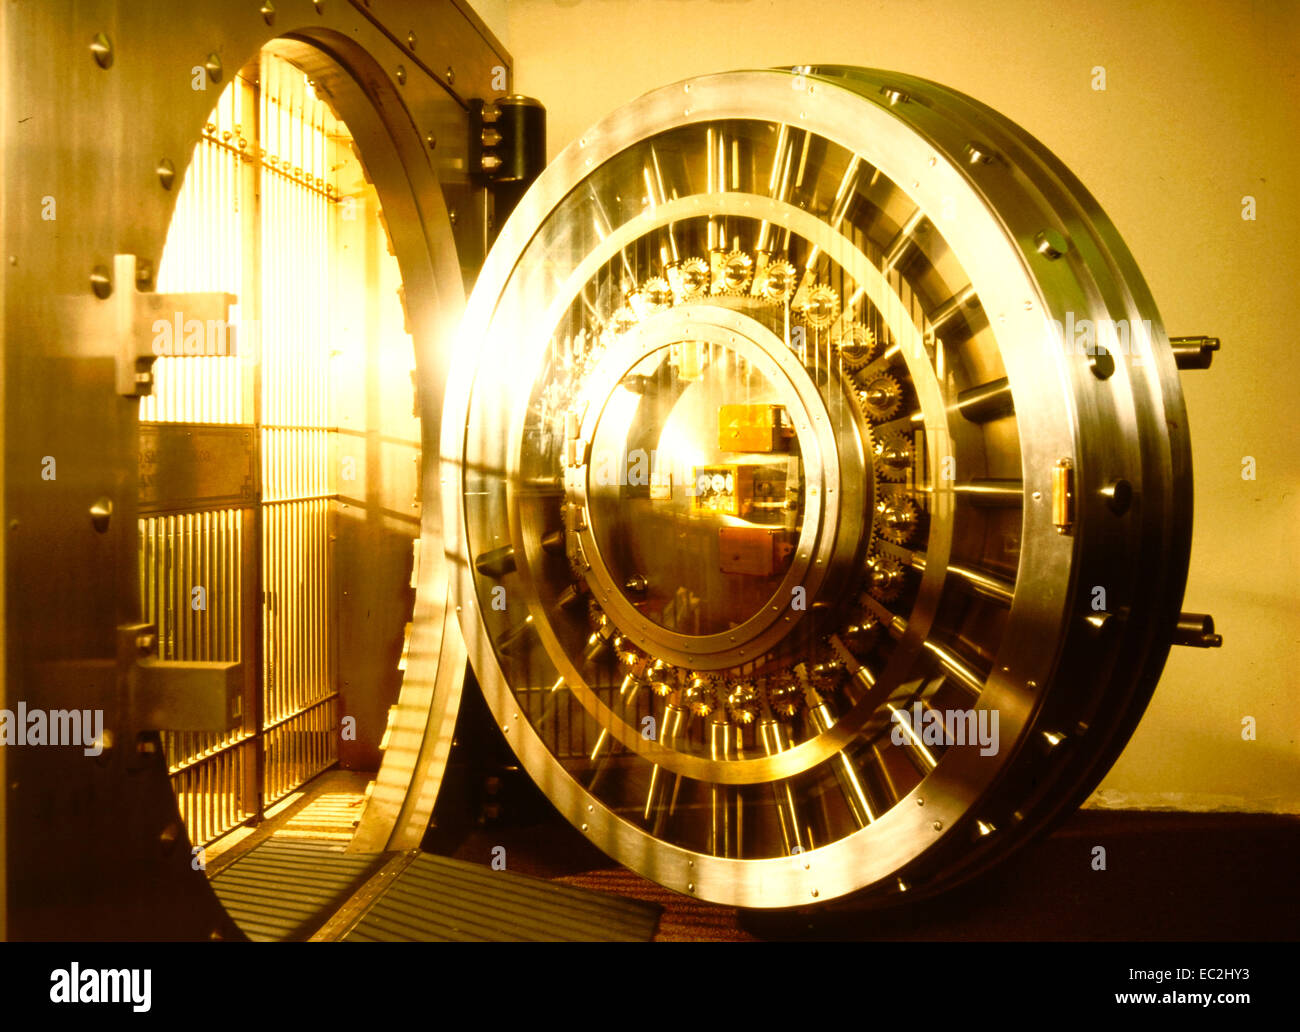 conceptual golden view of a bank circular door vault - Stock Image & Circular Door Stock Photos u0026 Circular Door Stock Images - Alamy